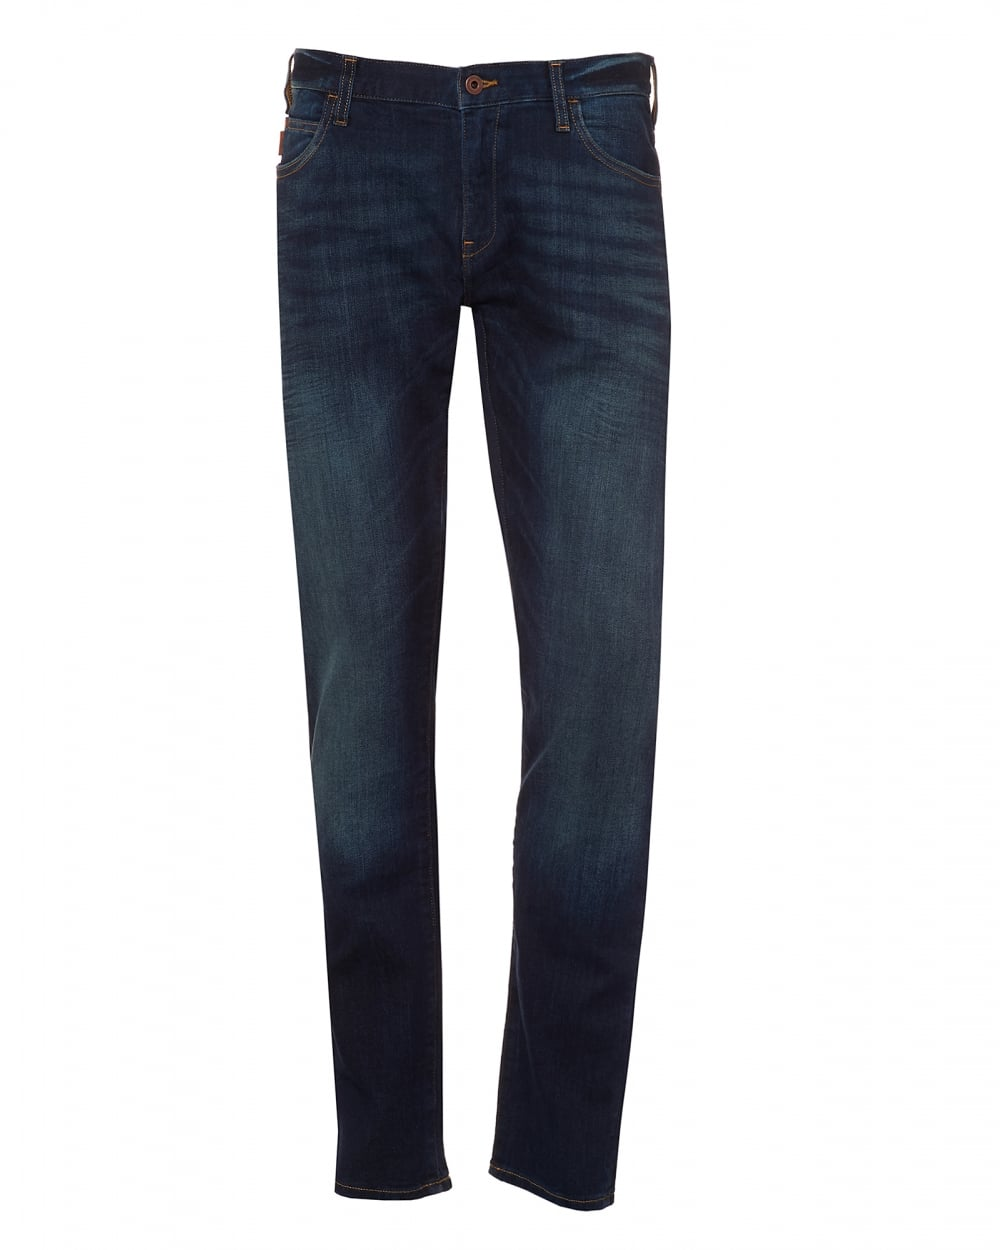 Emporio Fit Mens Slim JeansVintage Extra Wash Armani J10 Navy 3LR5A4jq